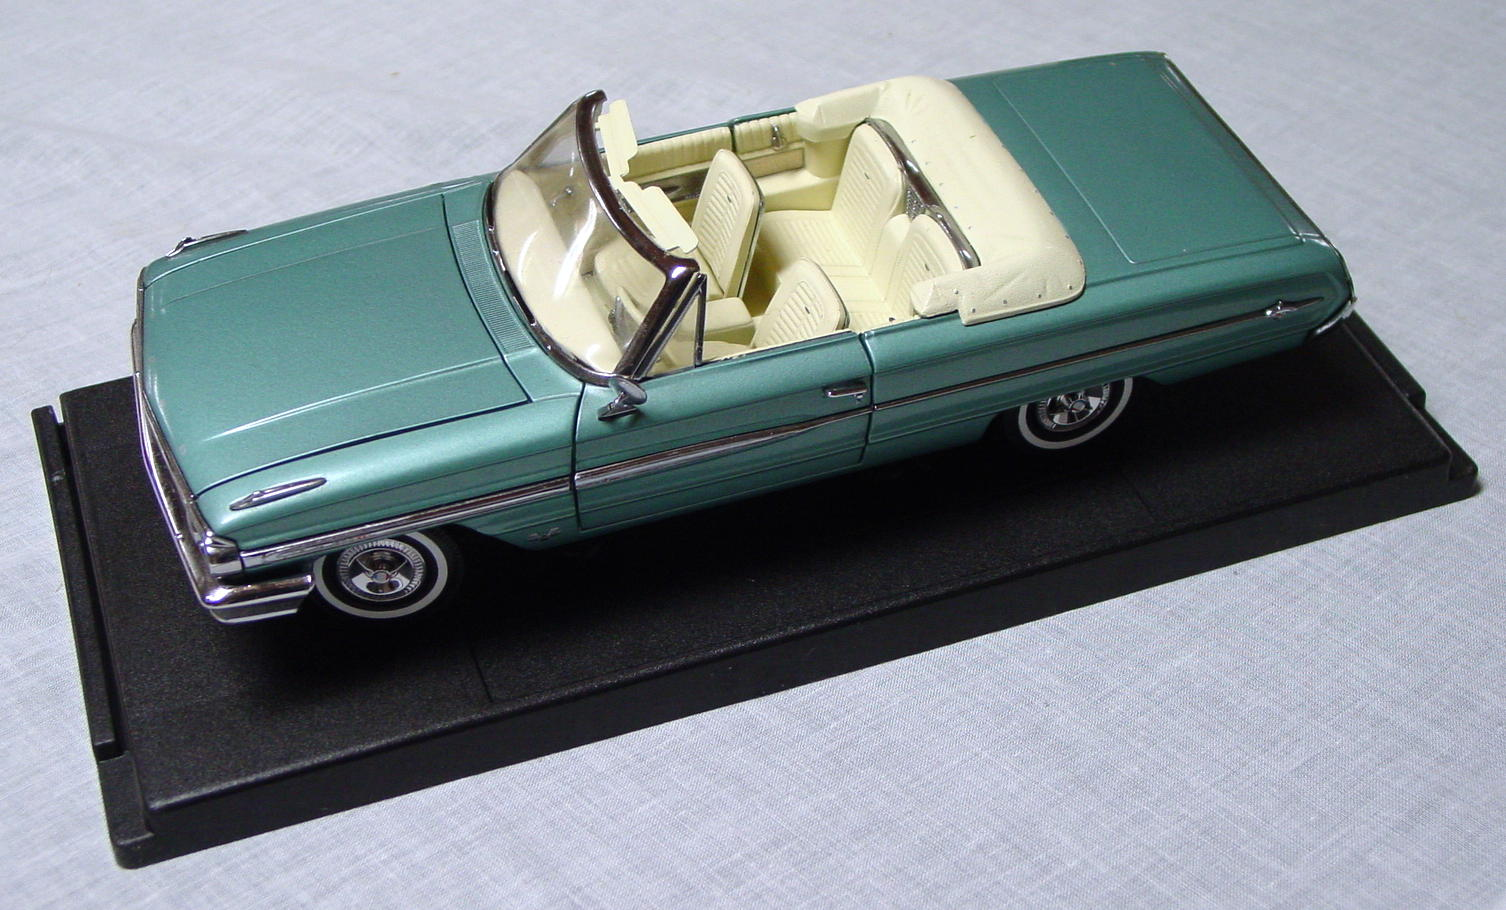 1_18 Scale - FAIRFIELD MINT 64 Ford Galaxie Conv light Aqua